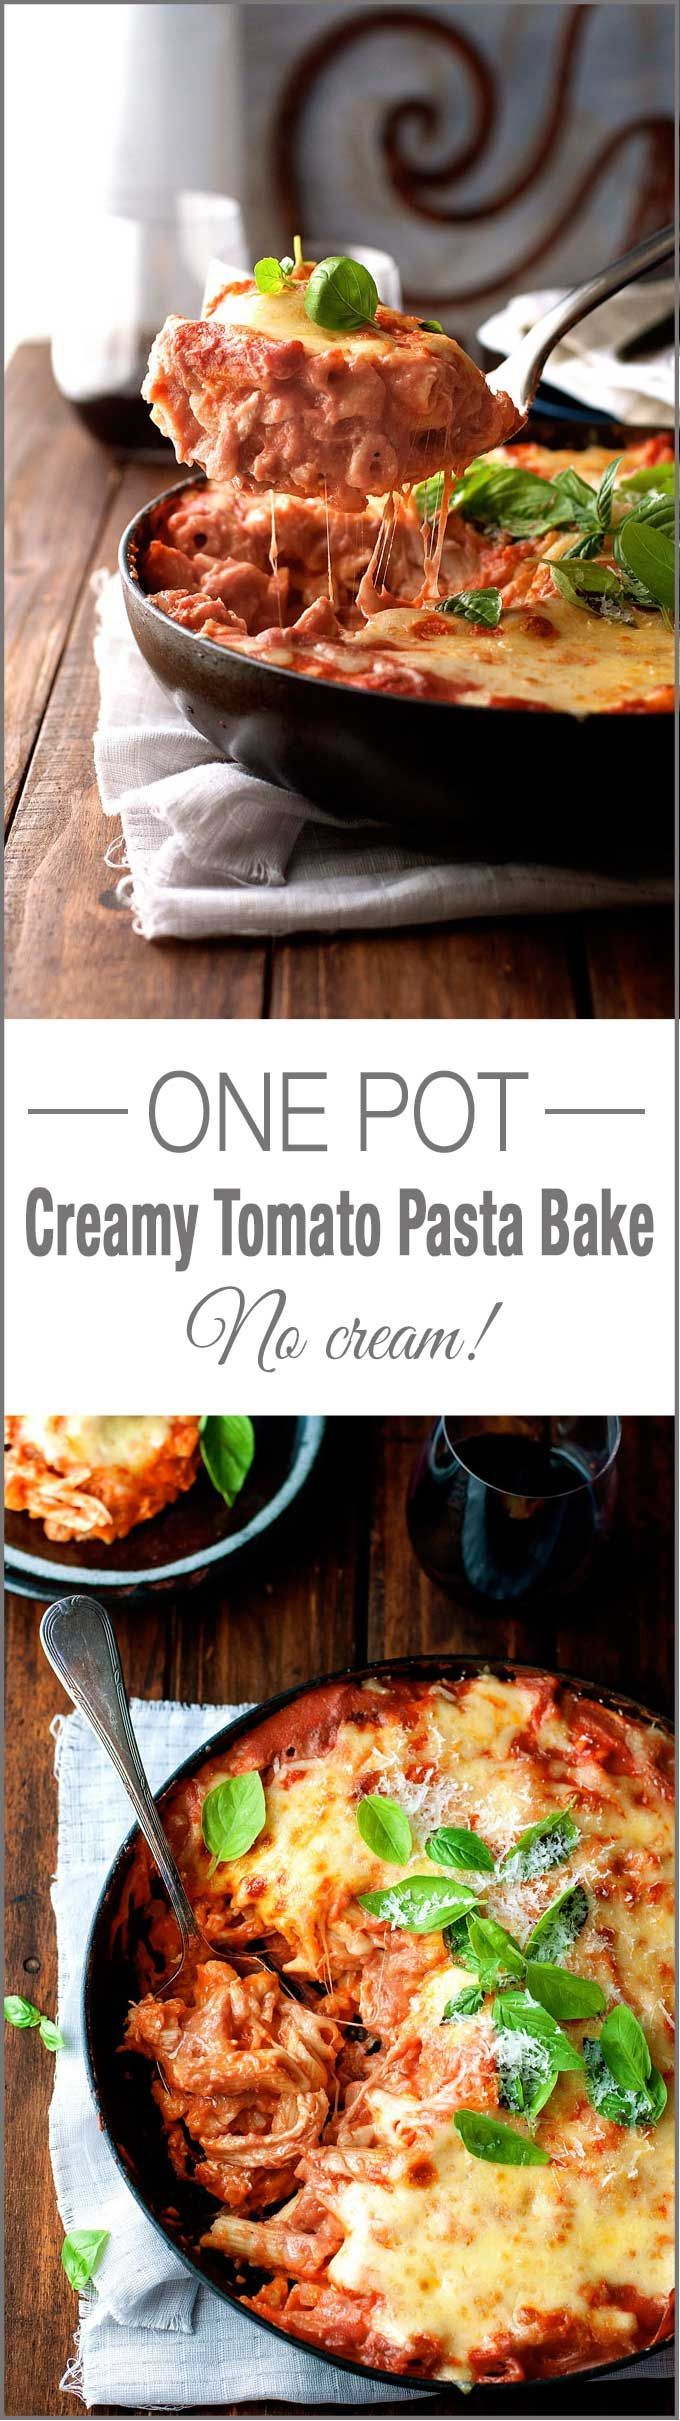 One Pot Creamy Chicken Tomato Pasta Bake - all made in one pot with no cream!